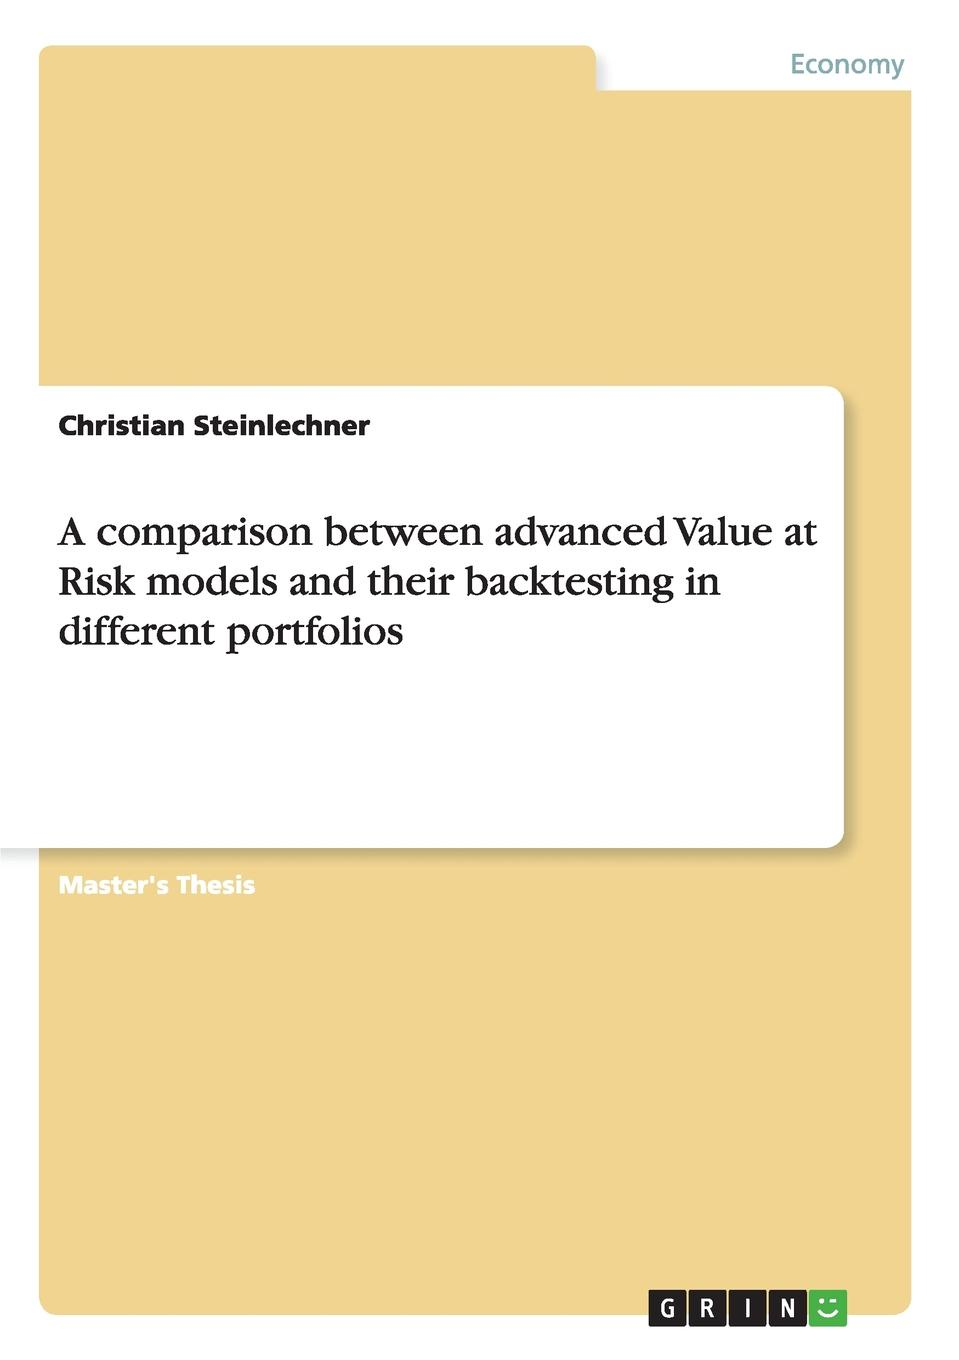 A comparison between advanced Value at Risk models and their backtesting in different portfolios